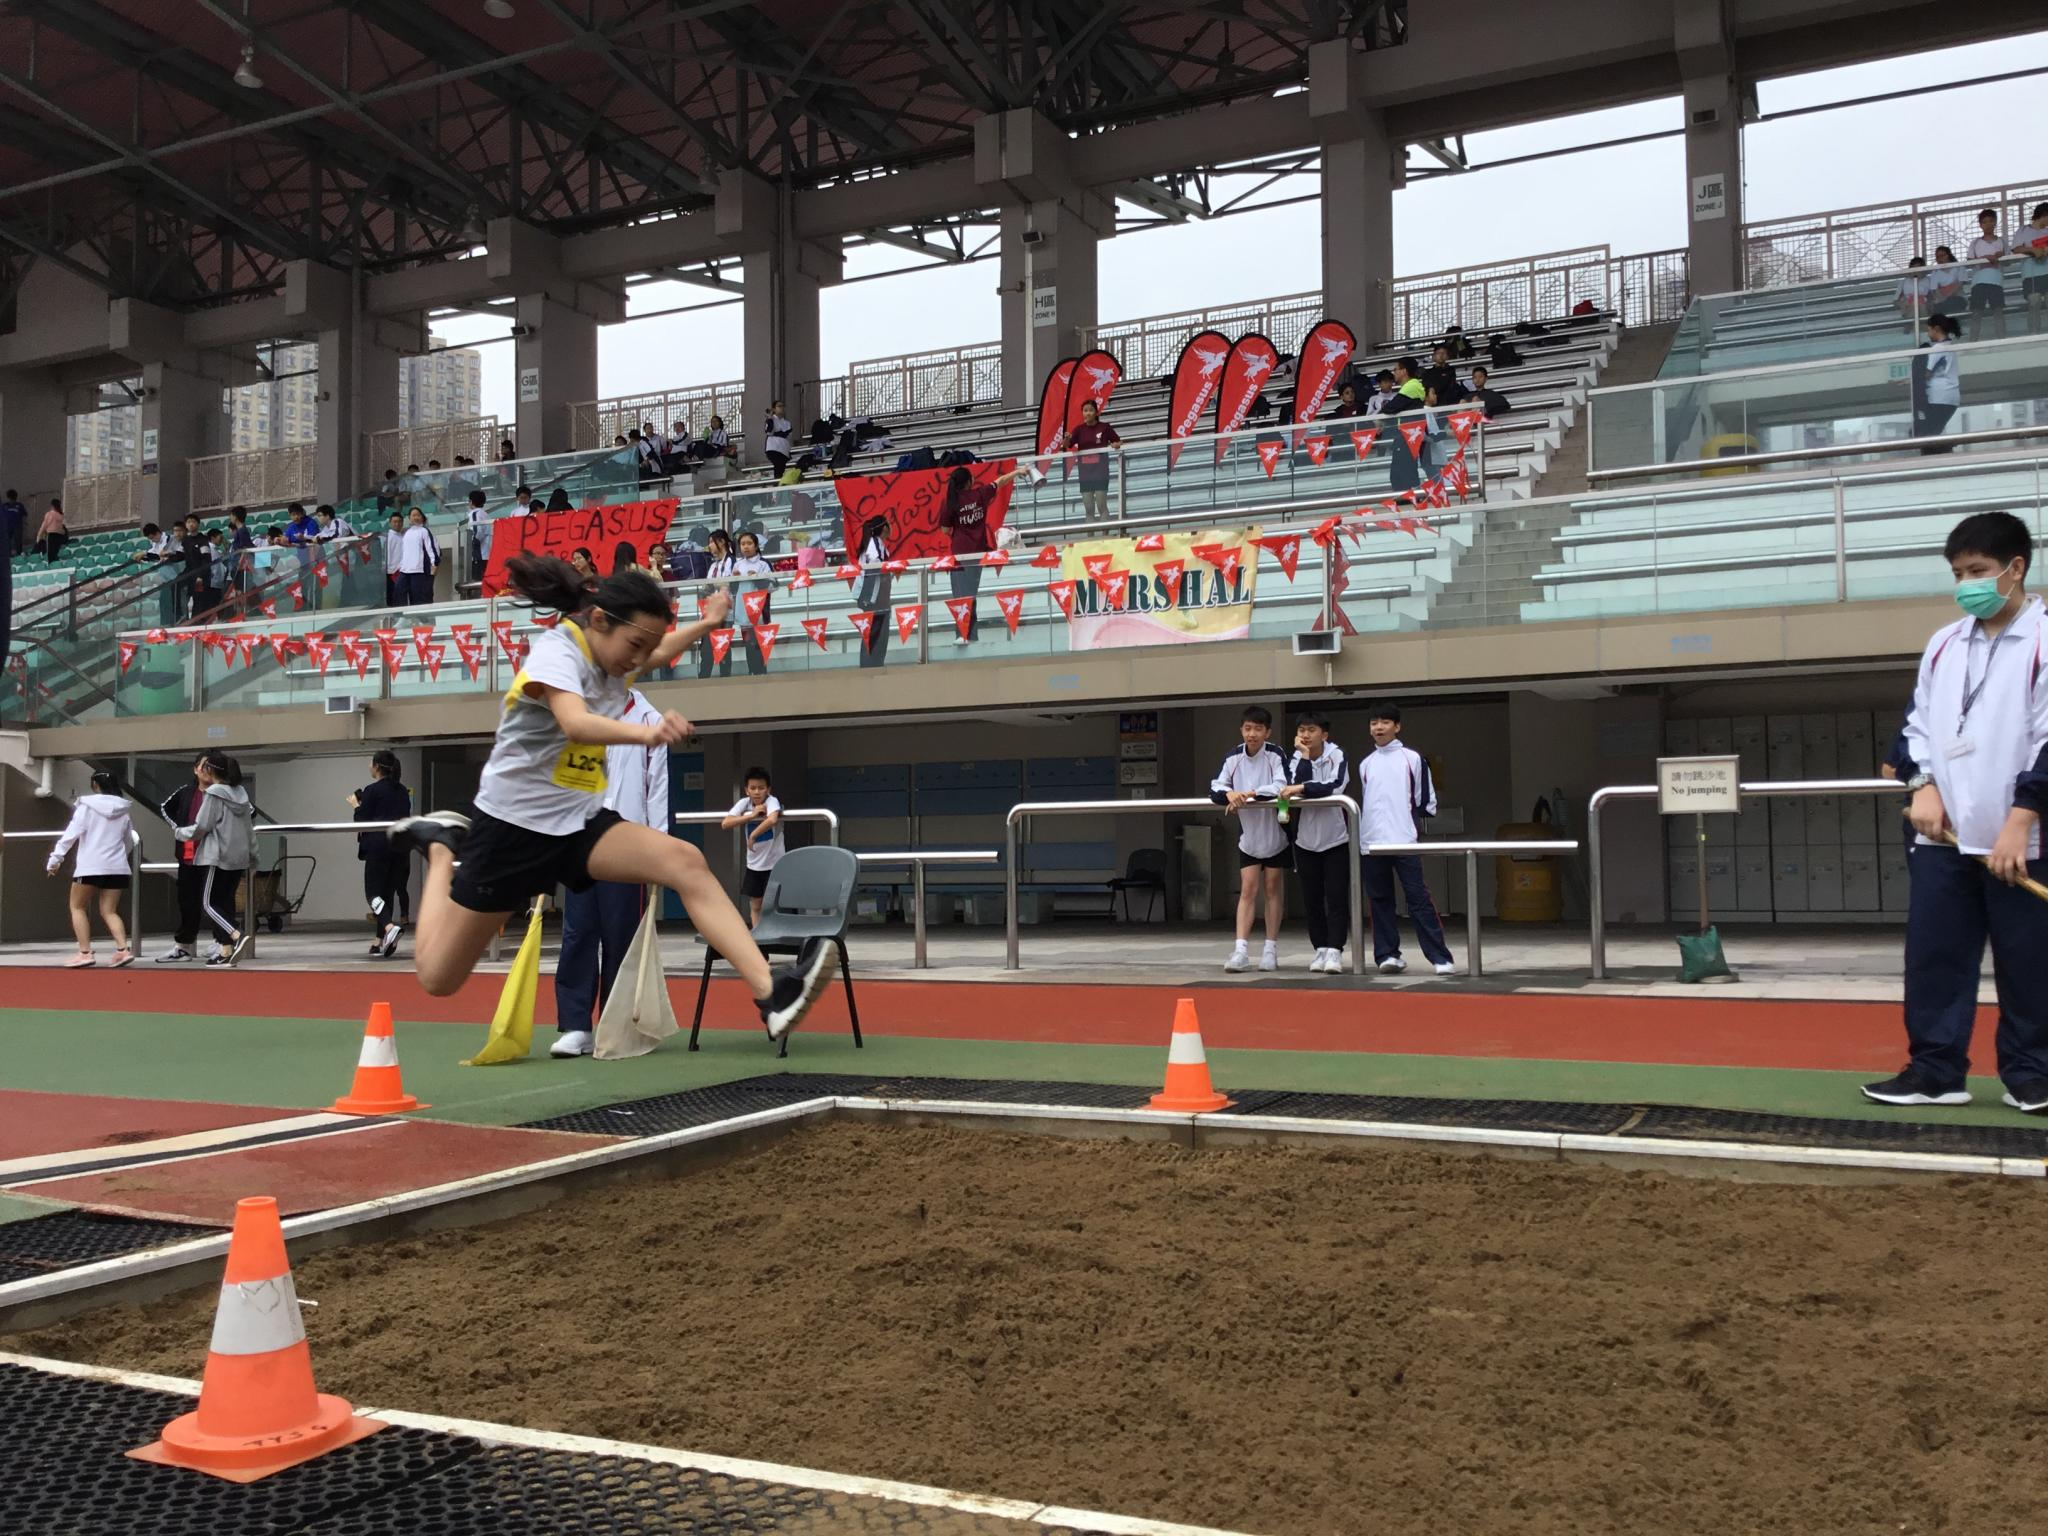 The student participated in the long jump competition.